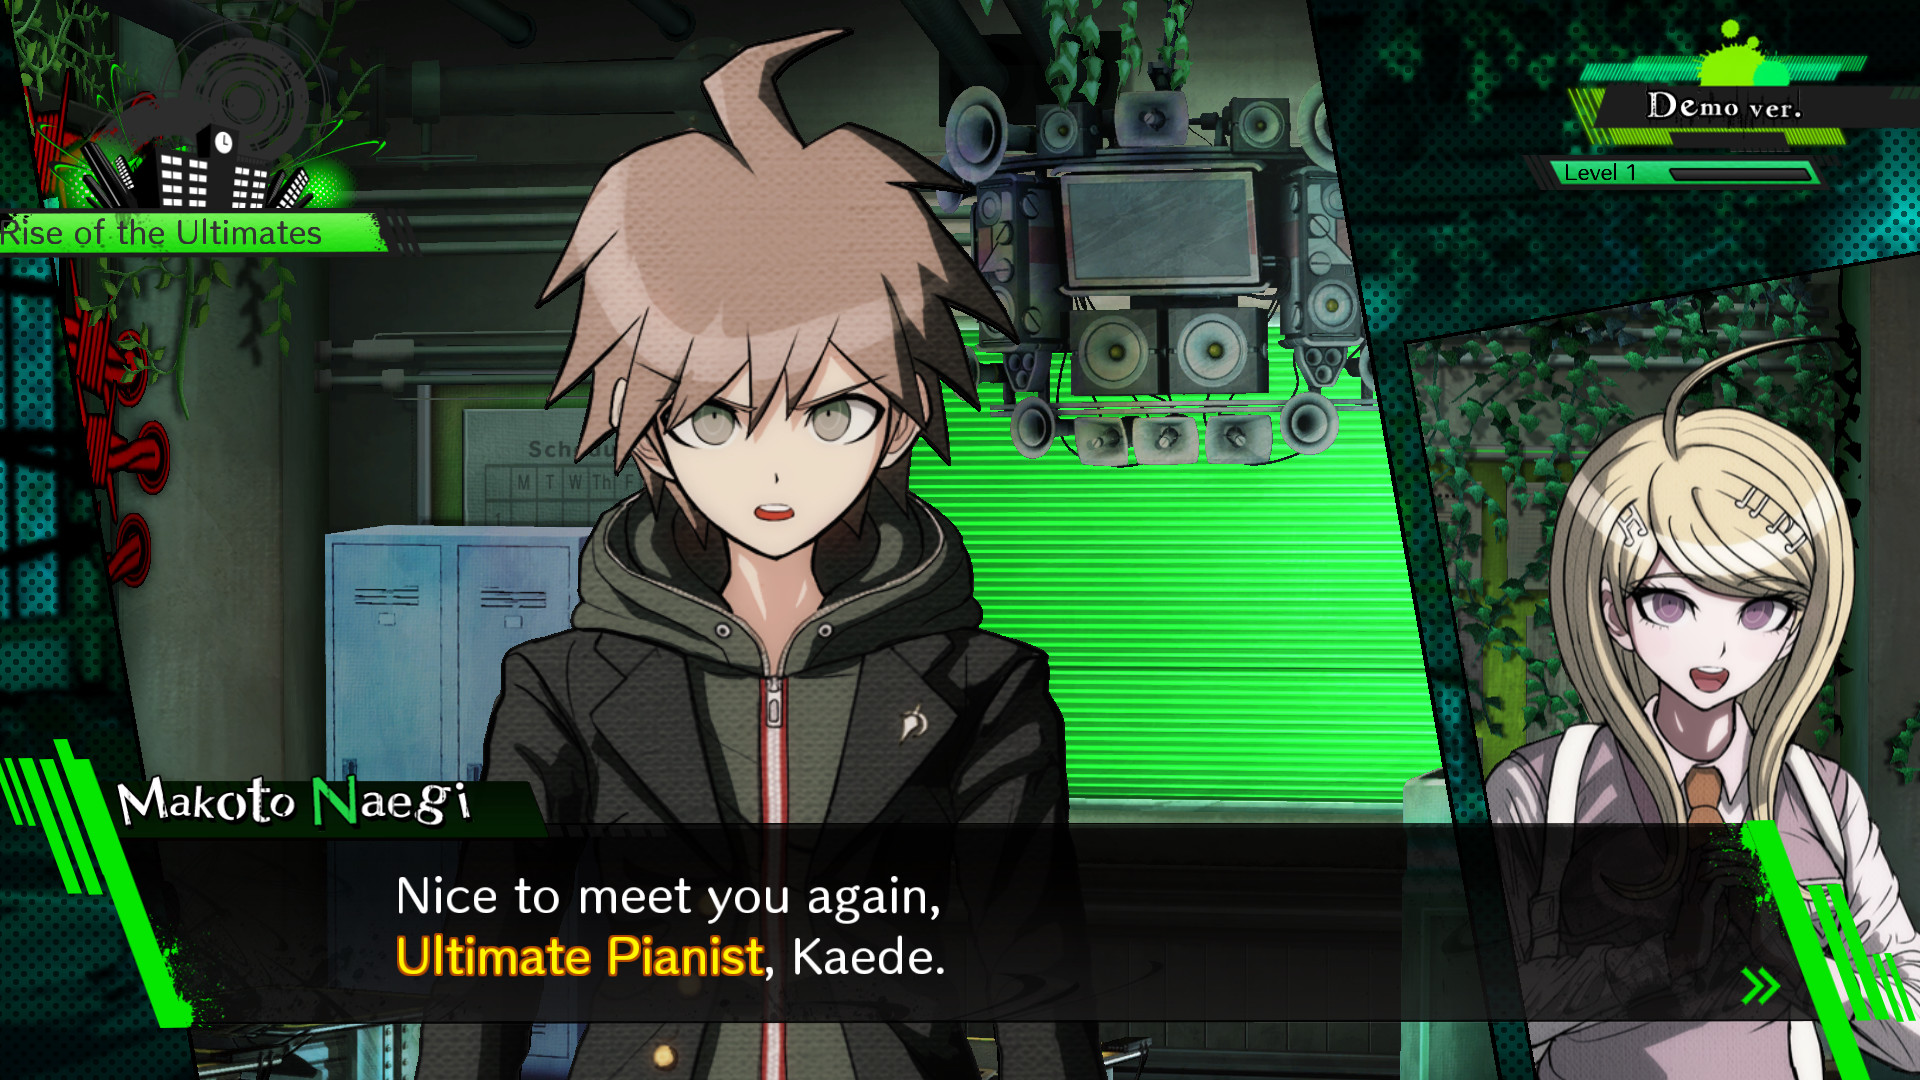 Danganronpa  —  Do.  A plain, legible serif is used for body text, and personality is added via the headers.